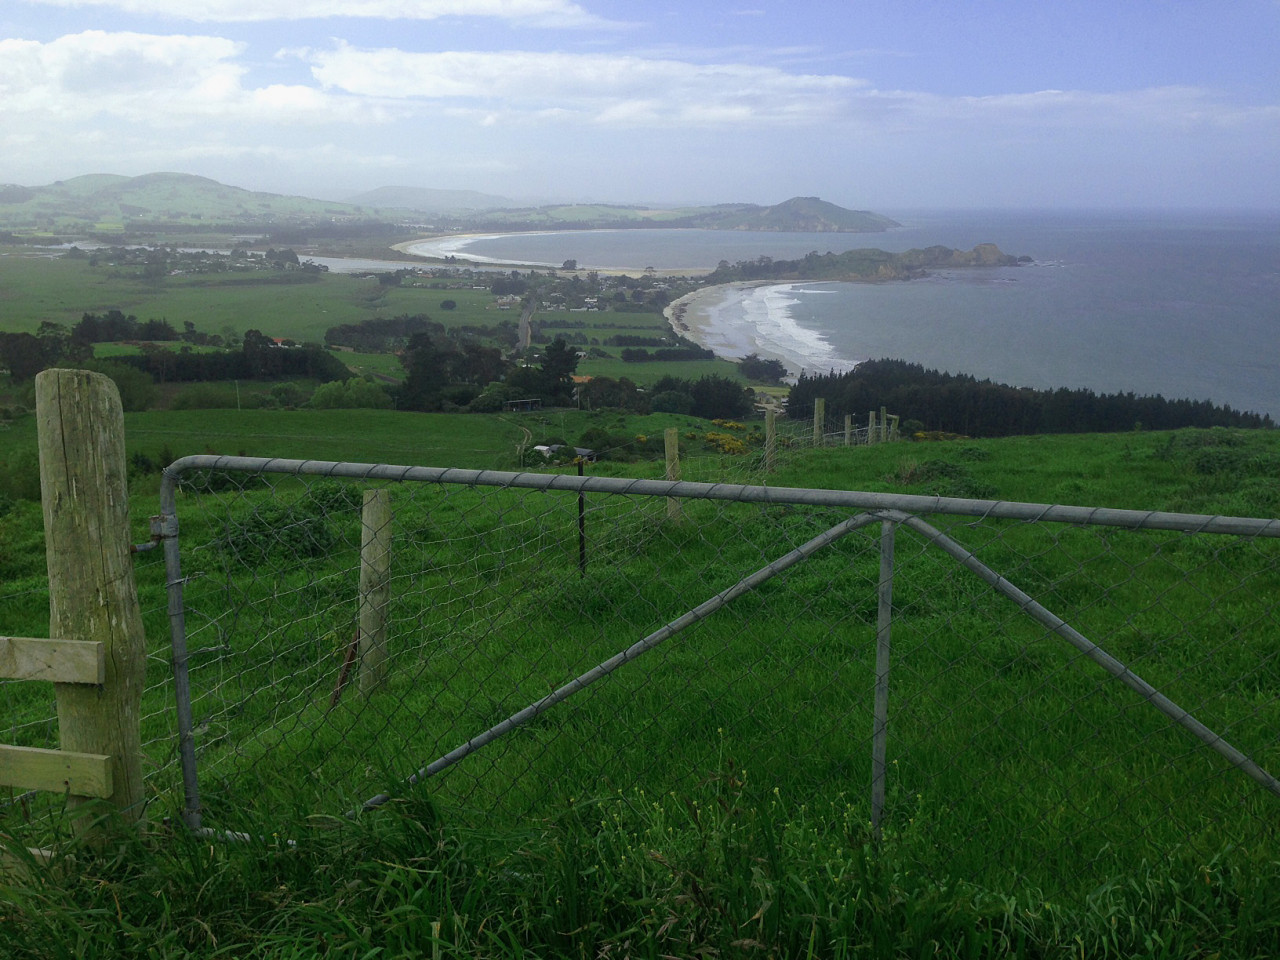 Puketeraki lookout: Karitane in the distance.